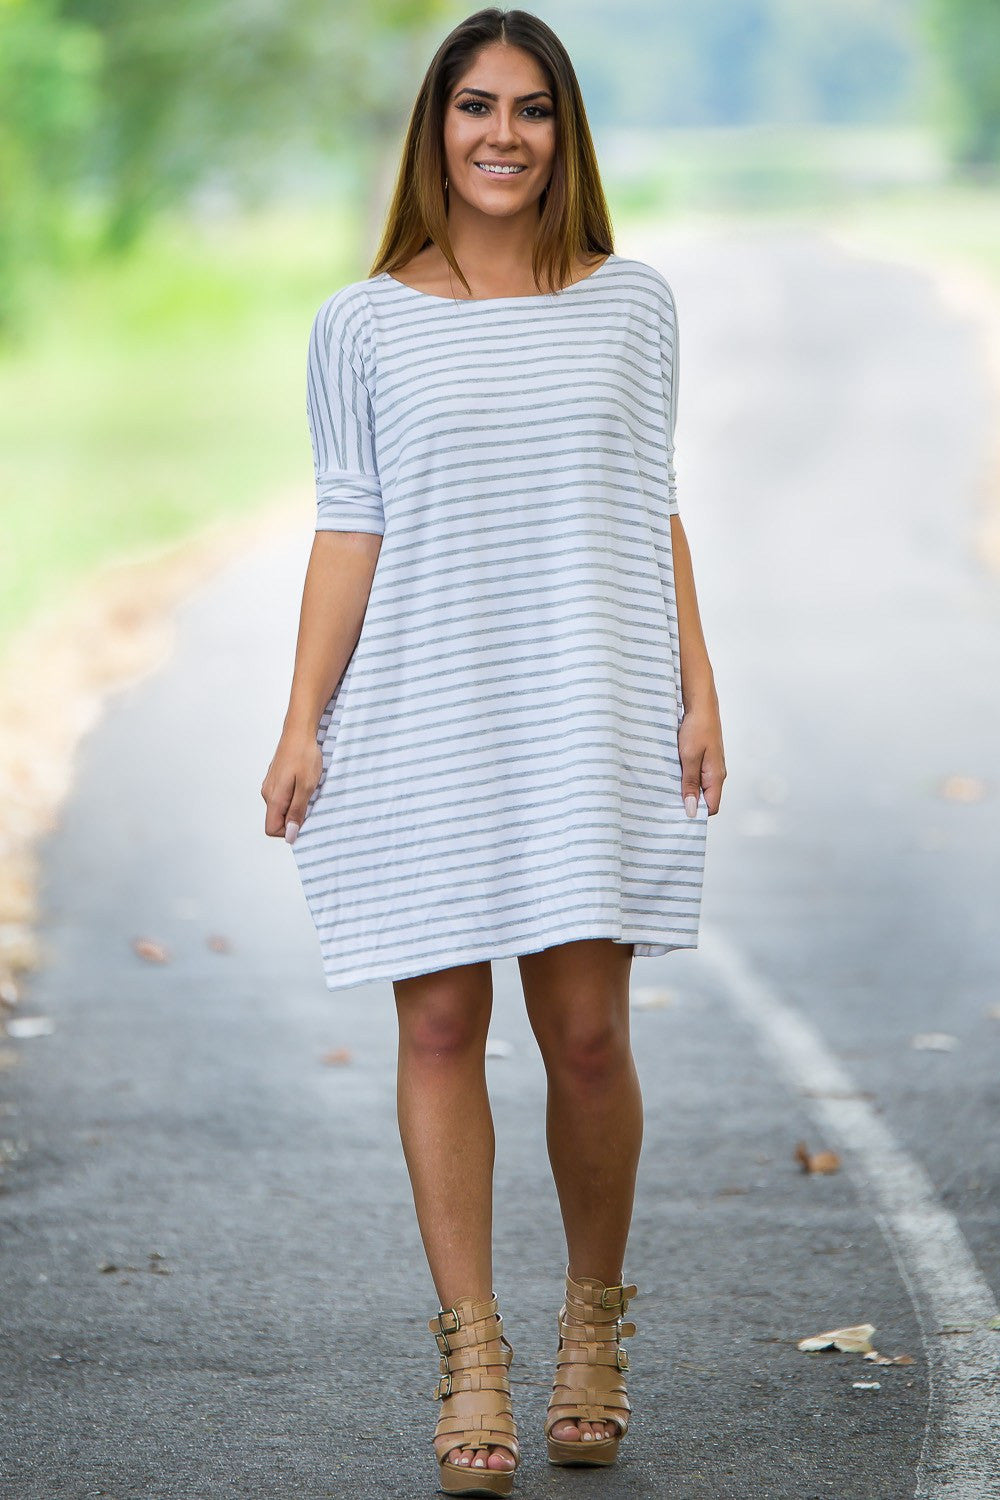 Half Sleeve Piko Tunic - White/Grey - Piko Clothing